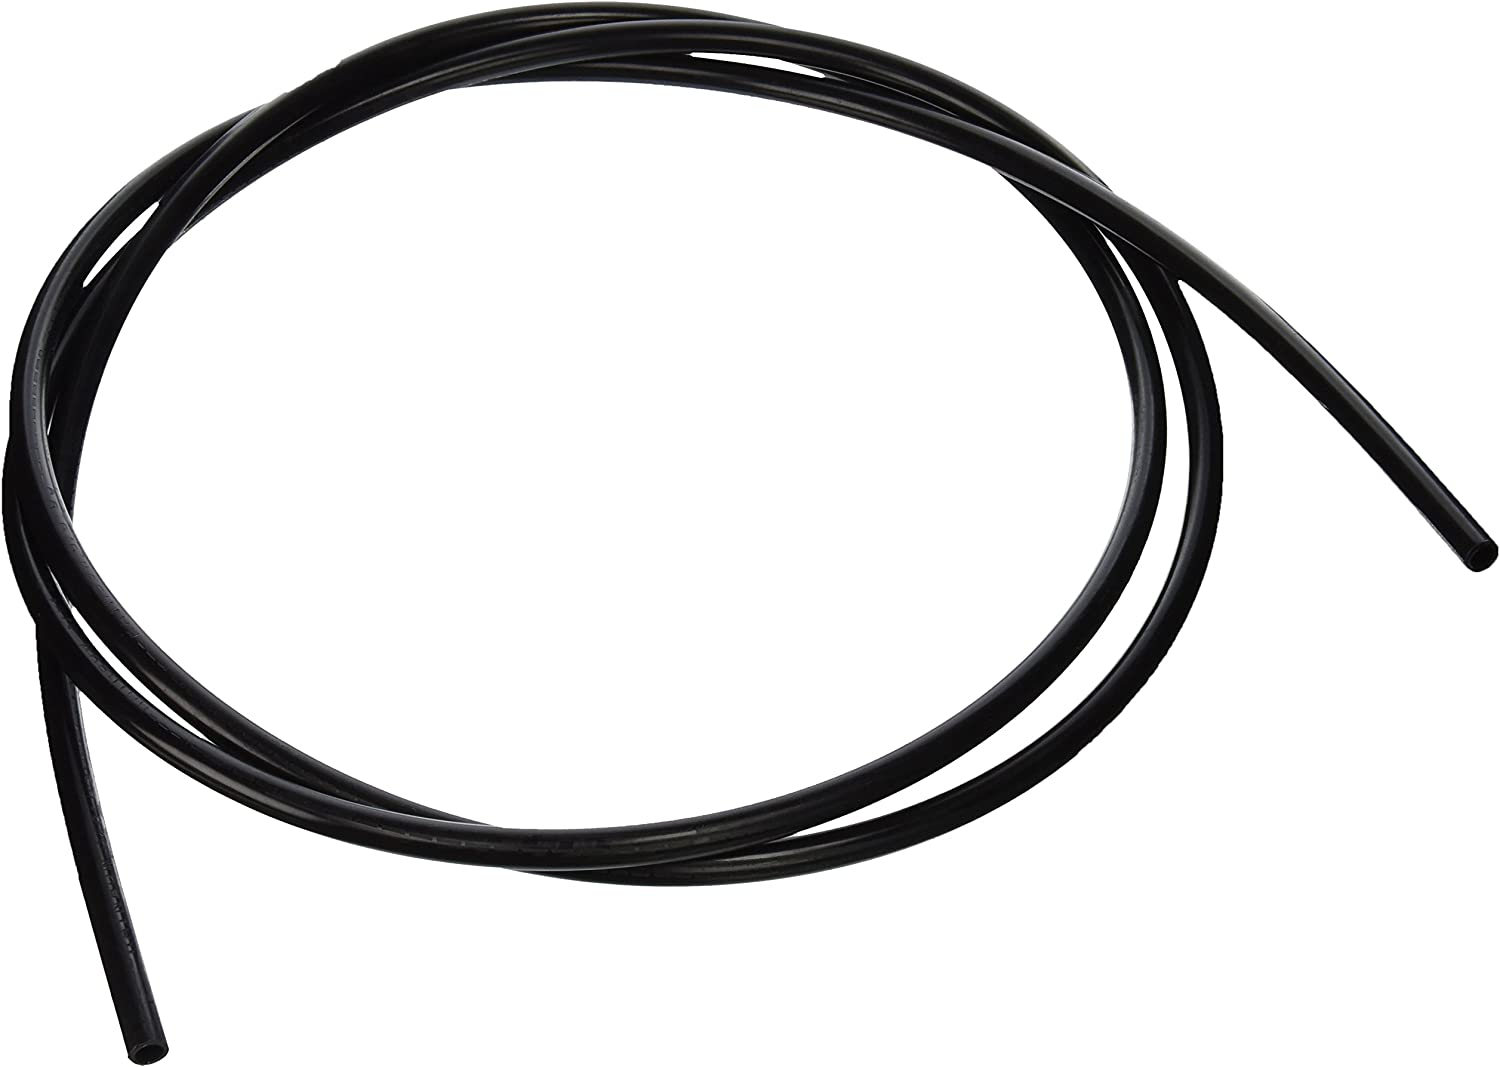 Pentair R172023 8-Feet Tubing Replacement Rainbow Automatic Chlorine/Bromine Pool and Spa Feeder: Garden & Outdoor